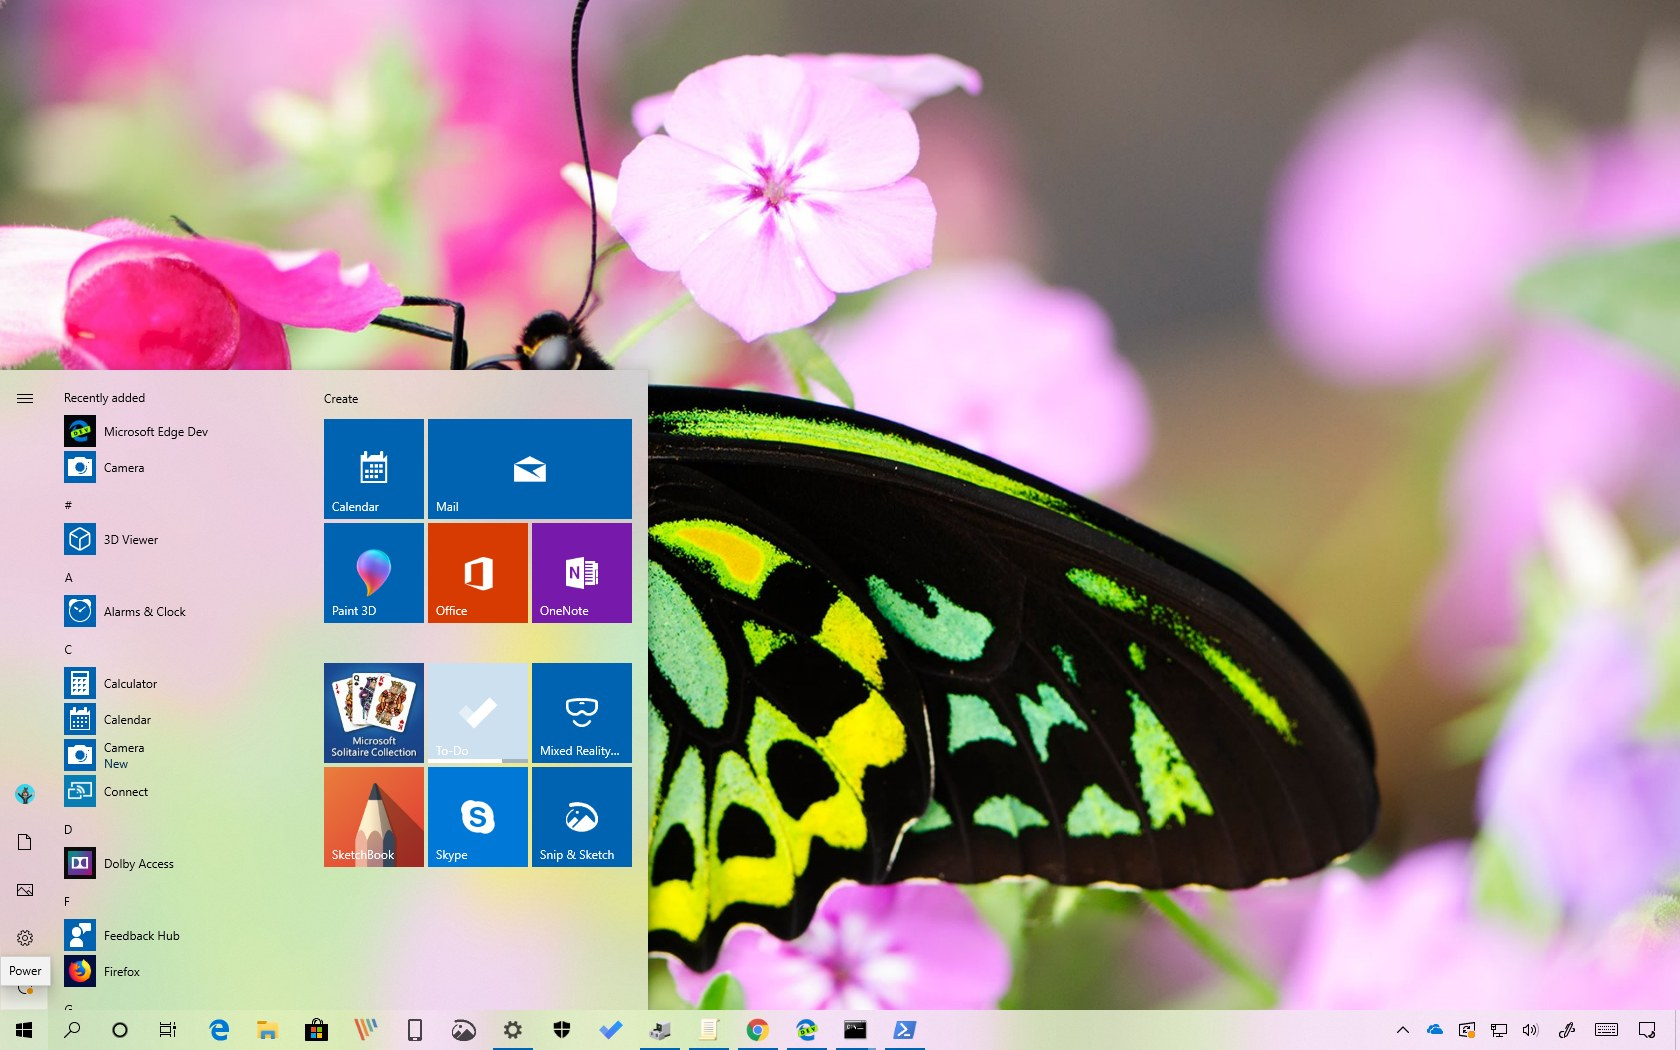 Windows 10 version 1903 final version available in Release Preview